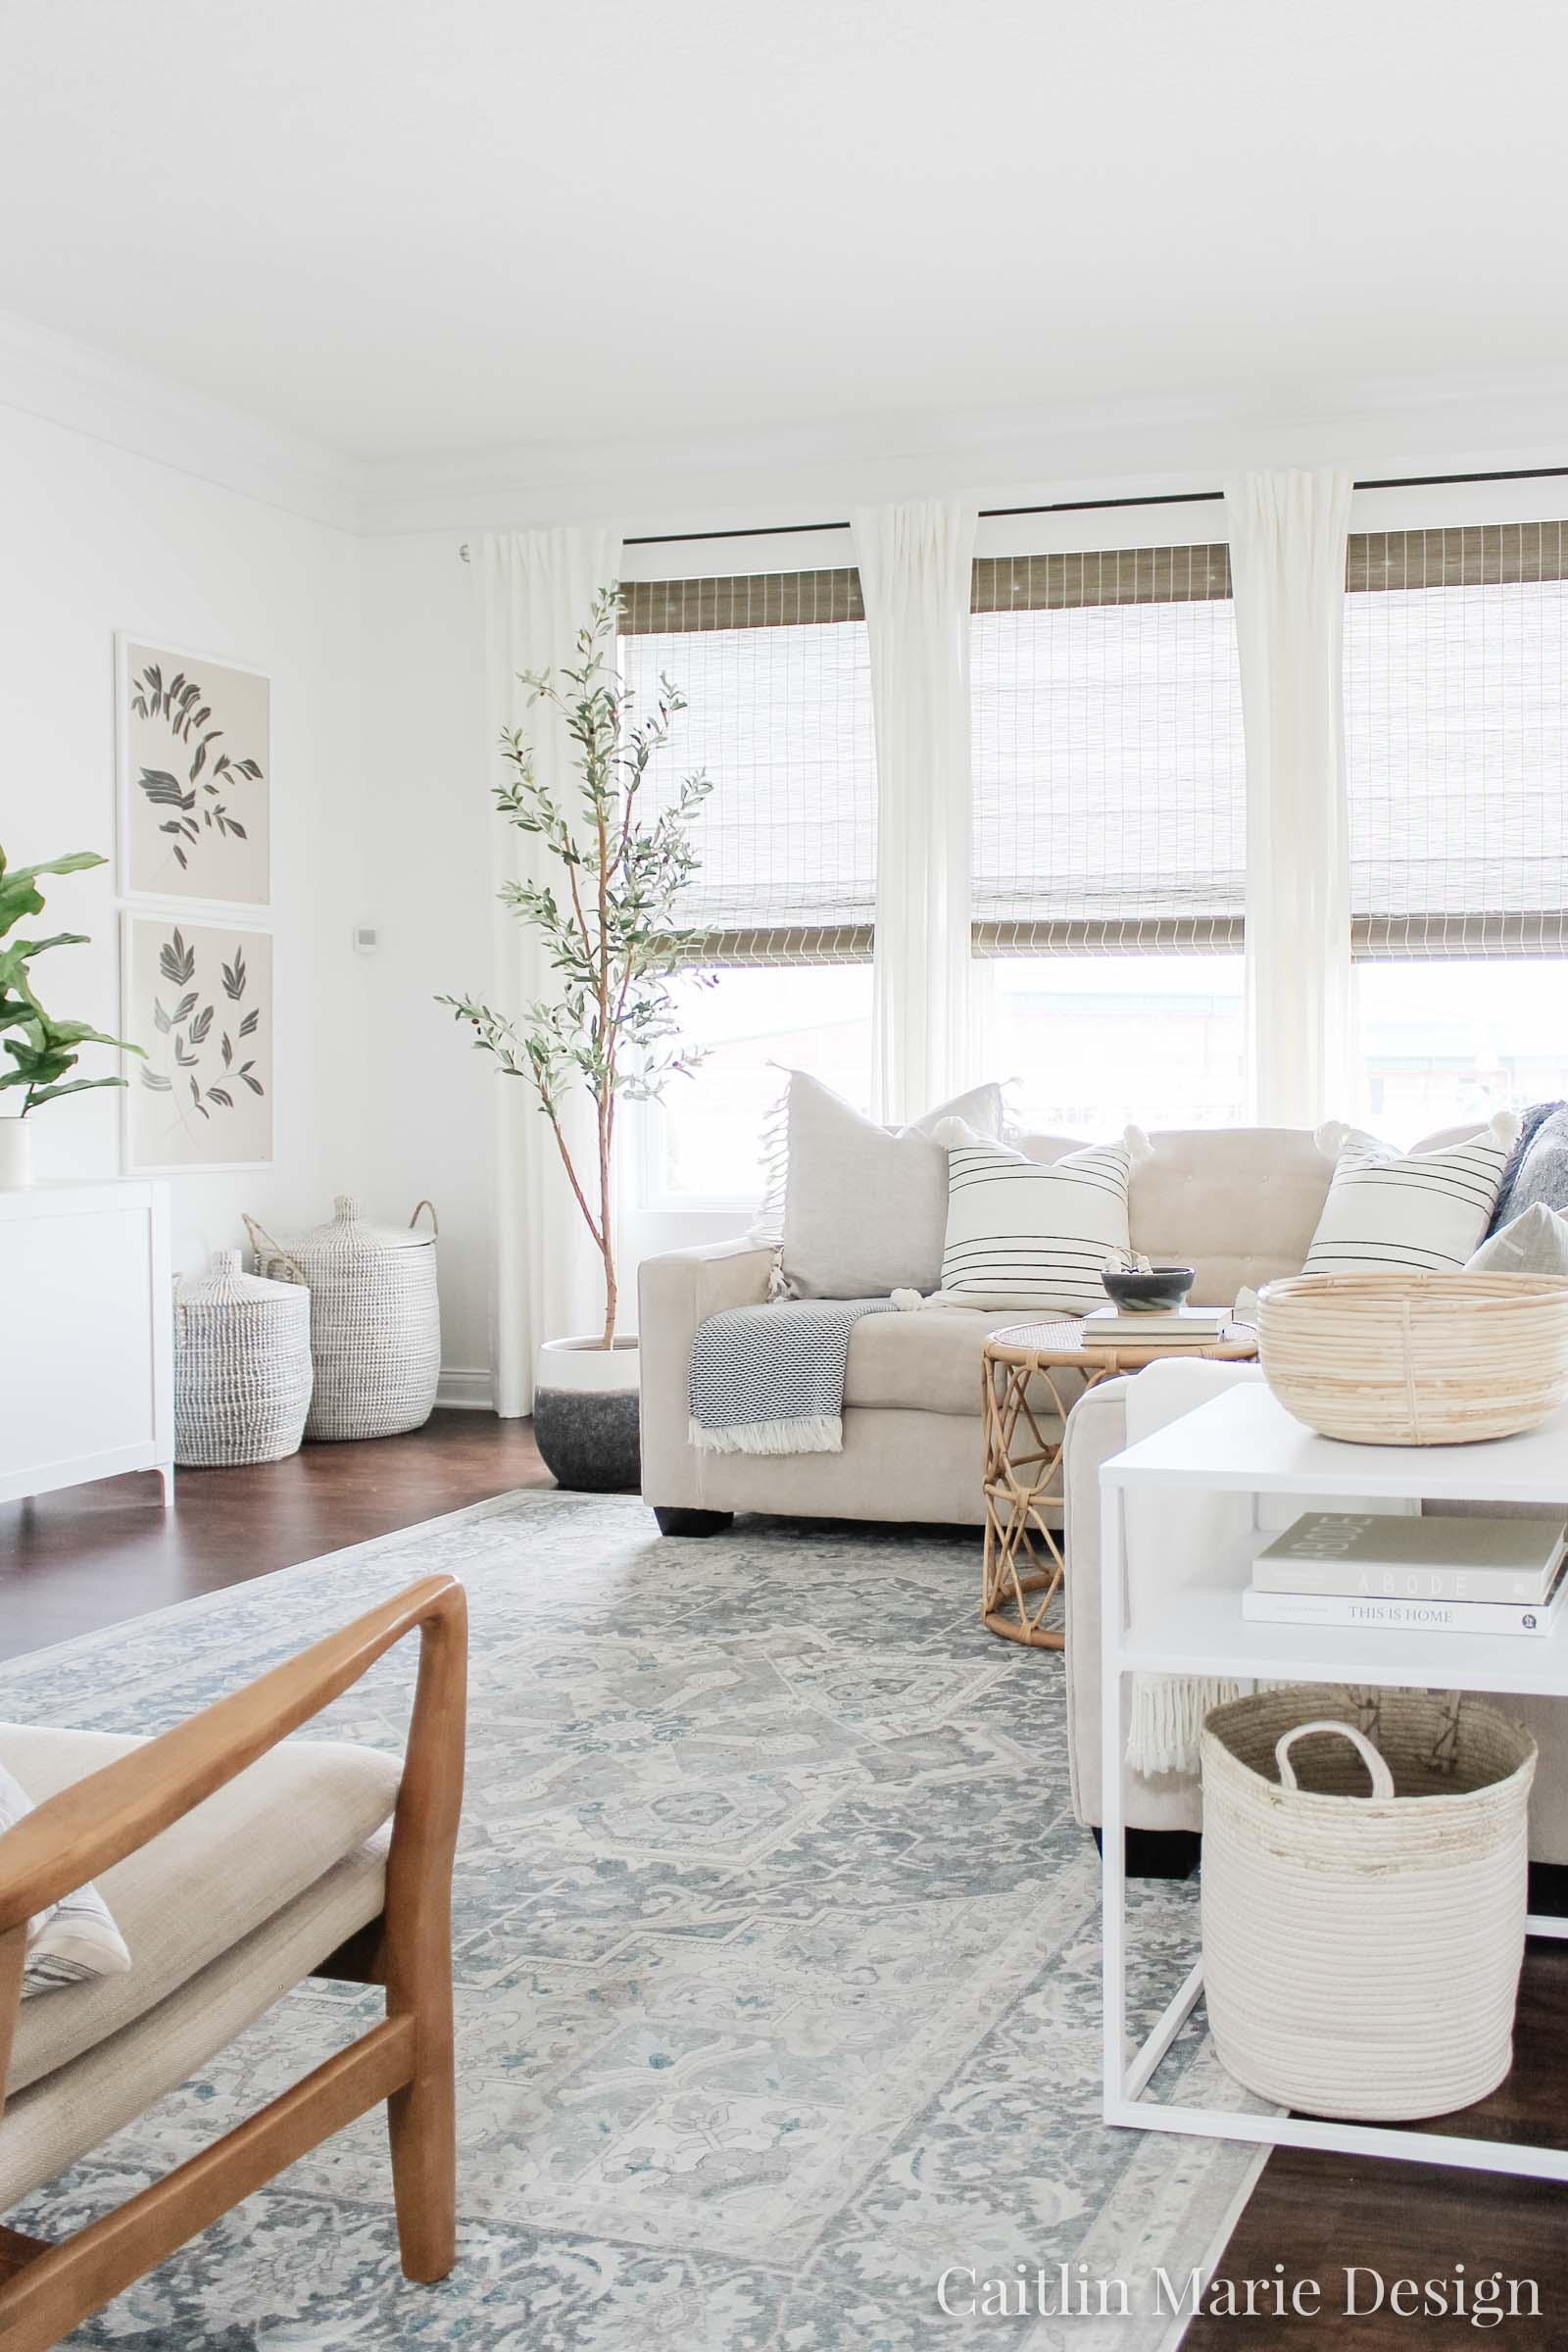 Coastal Home Decor Refresh with Serena & Lily | coastal living room, light and airy decor, olive tree, blue vintage rug, Serena & Lily pillows, coastal decor